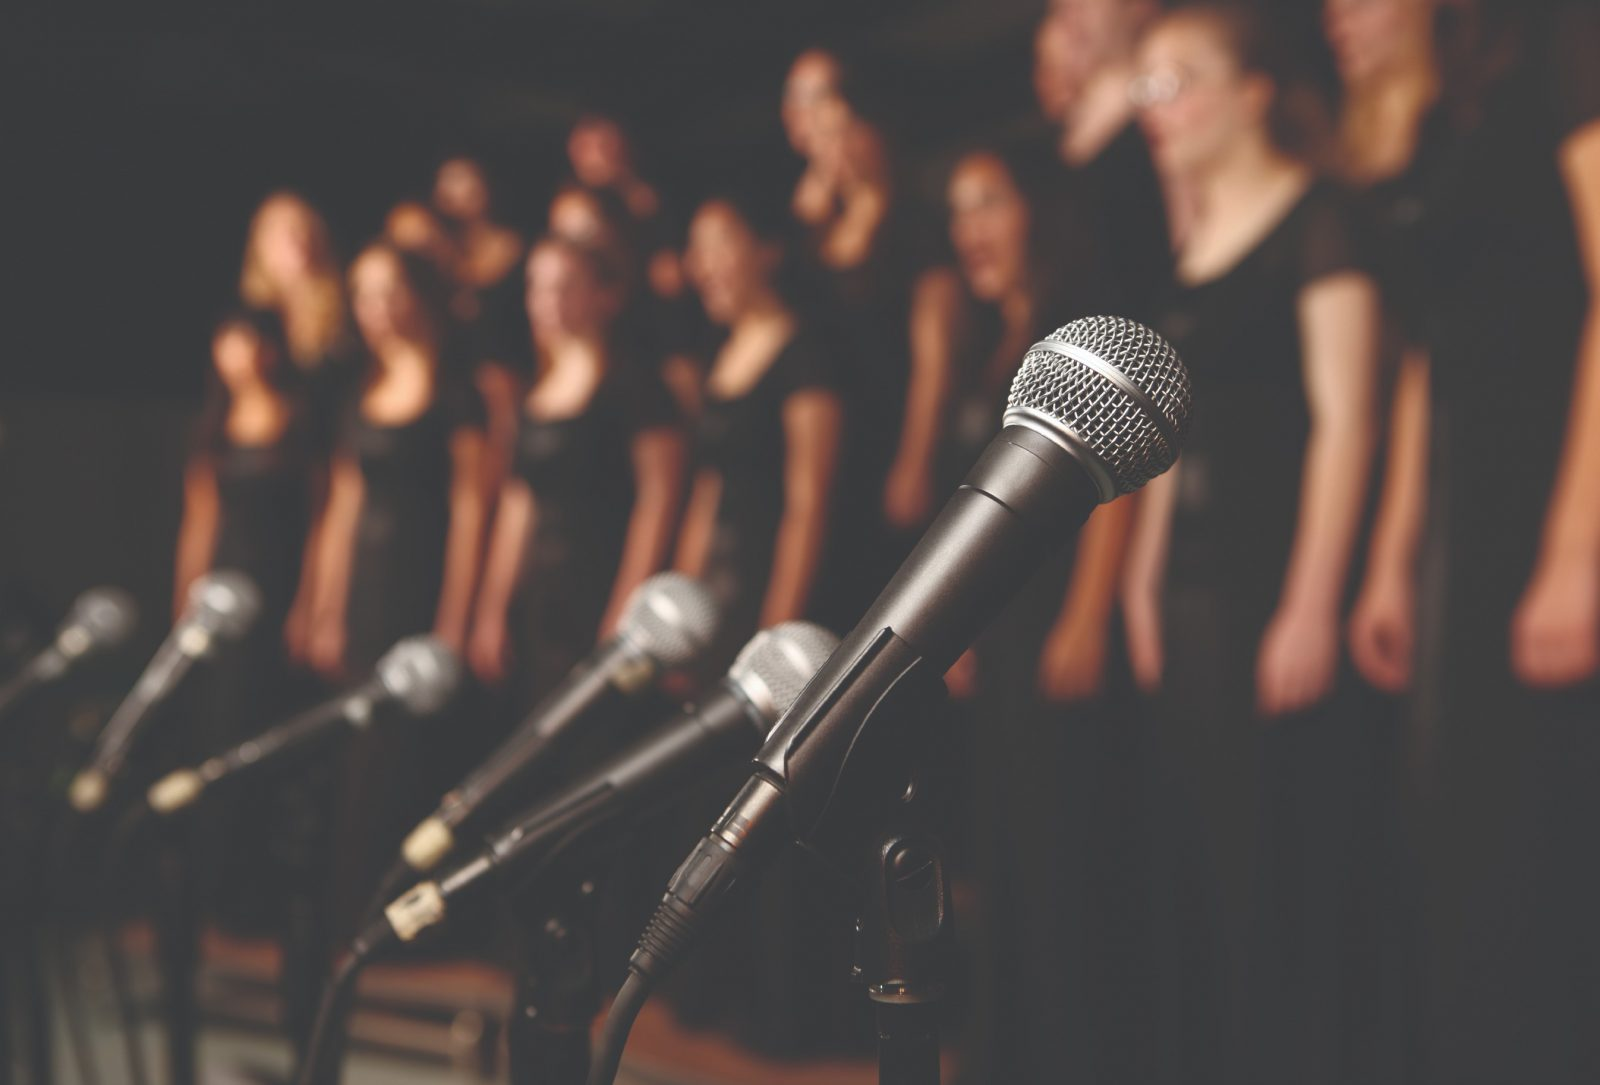 Stock image of a choir blurred into the background with microphones in the foreground